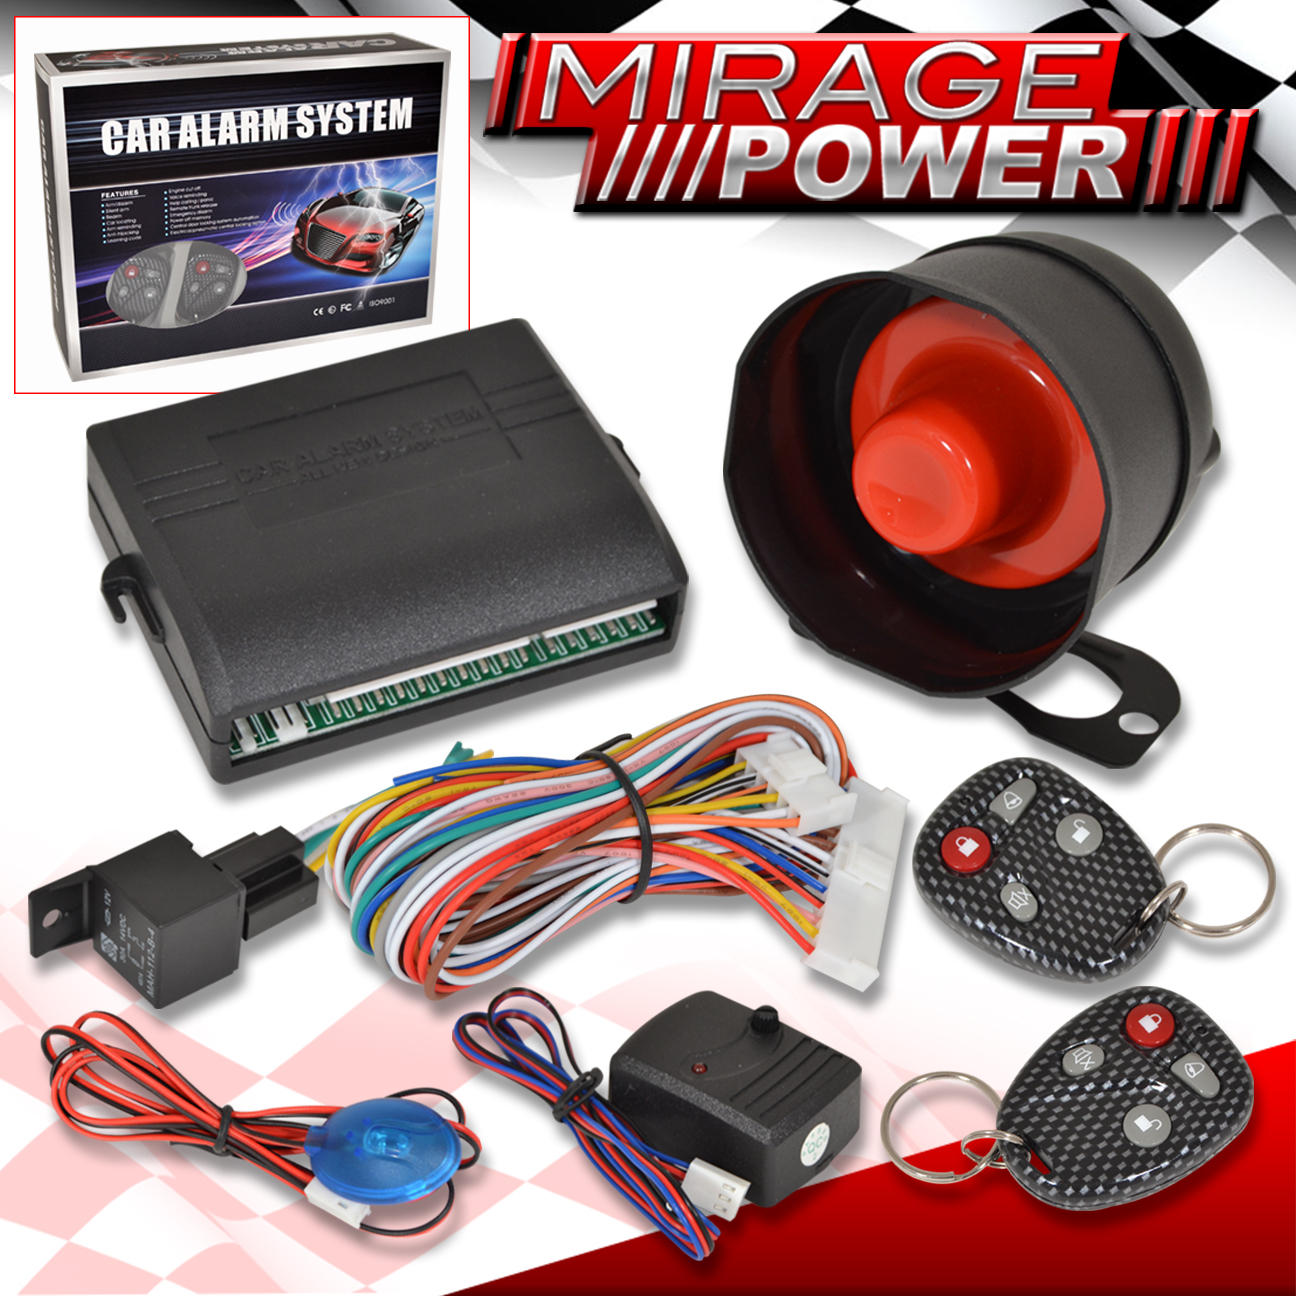 Civic Security Msi 6570 Honda Steering Wiring Accord Safety And As It Receives What Little Energy Needs Via The Ignition Lock Unit That Functions A Transmitter Receiver